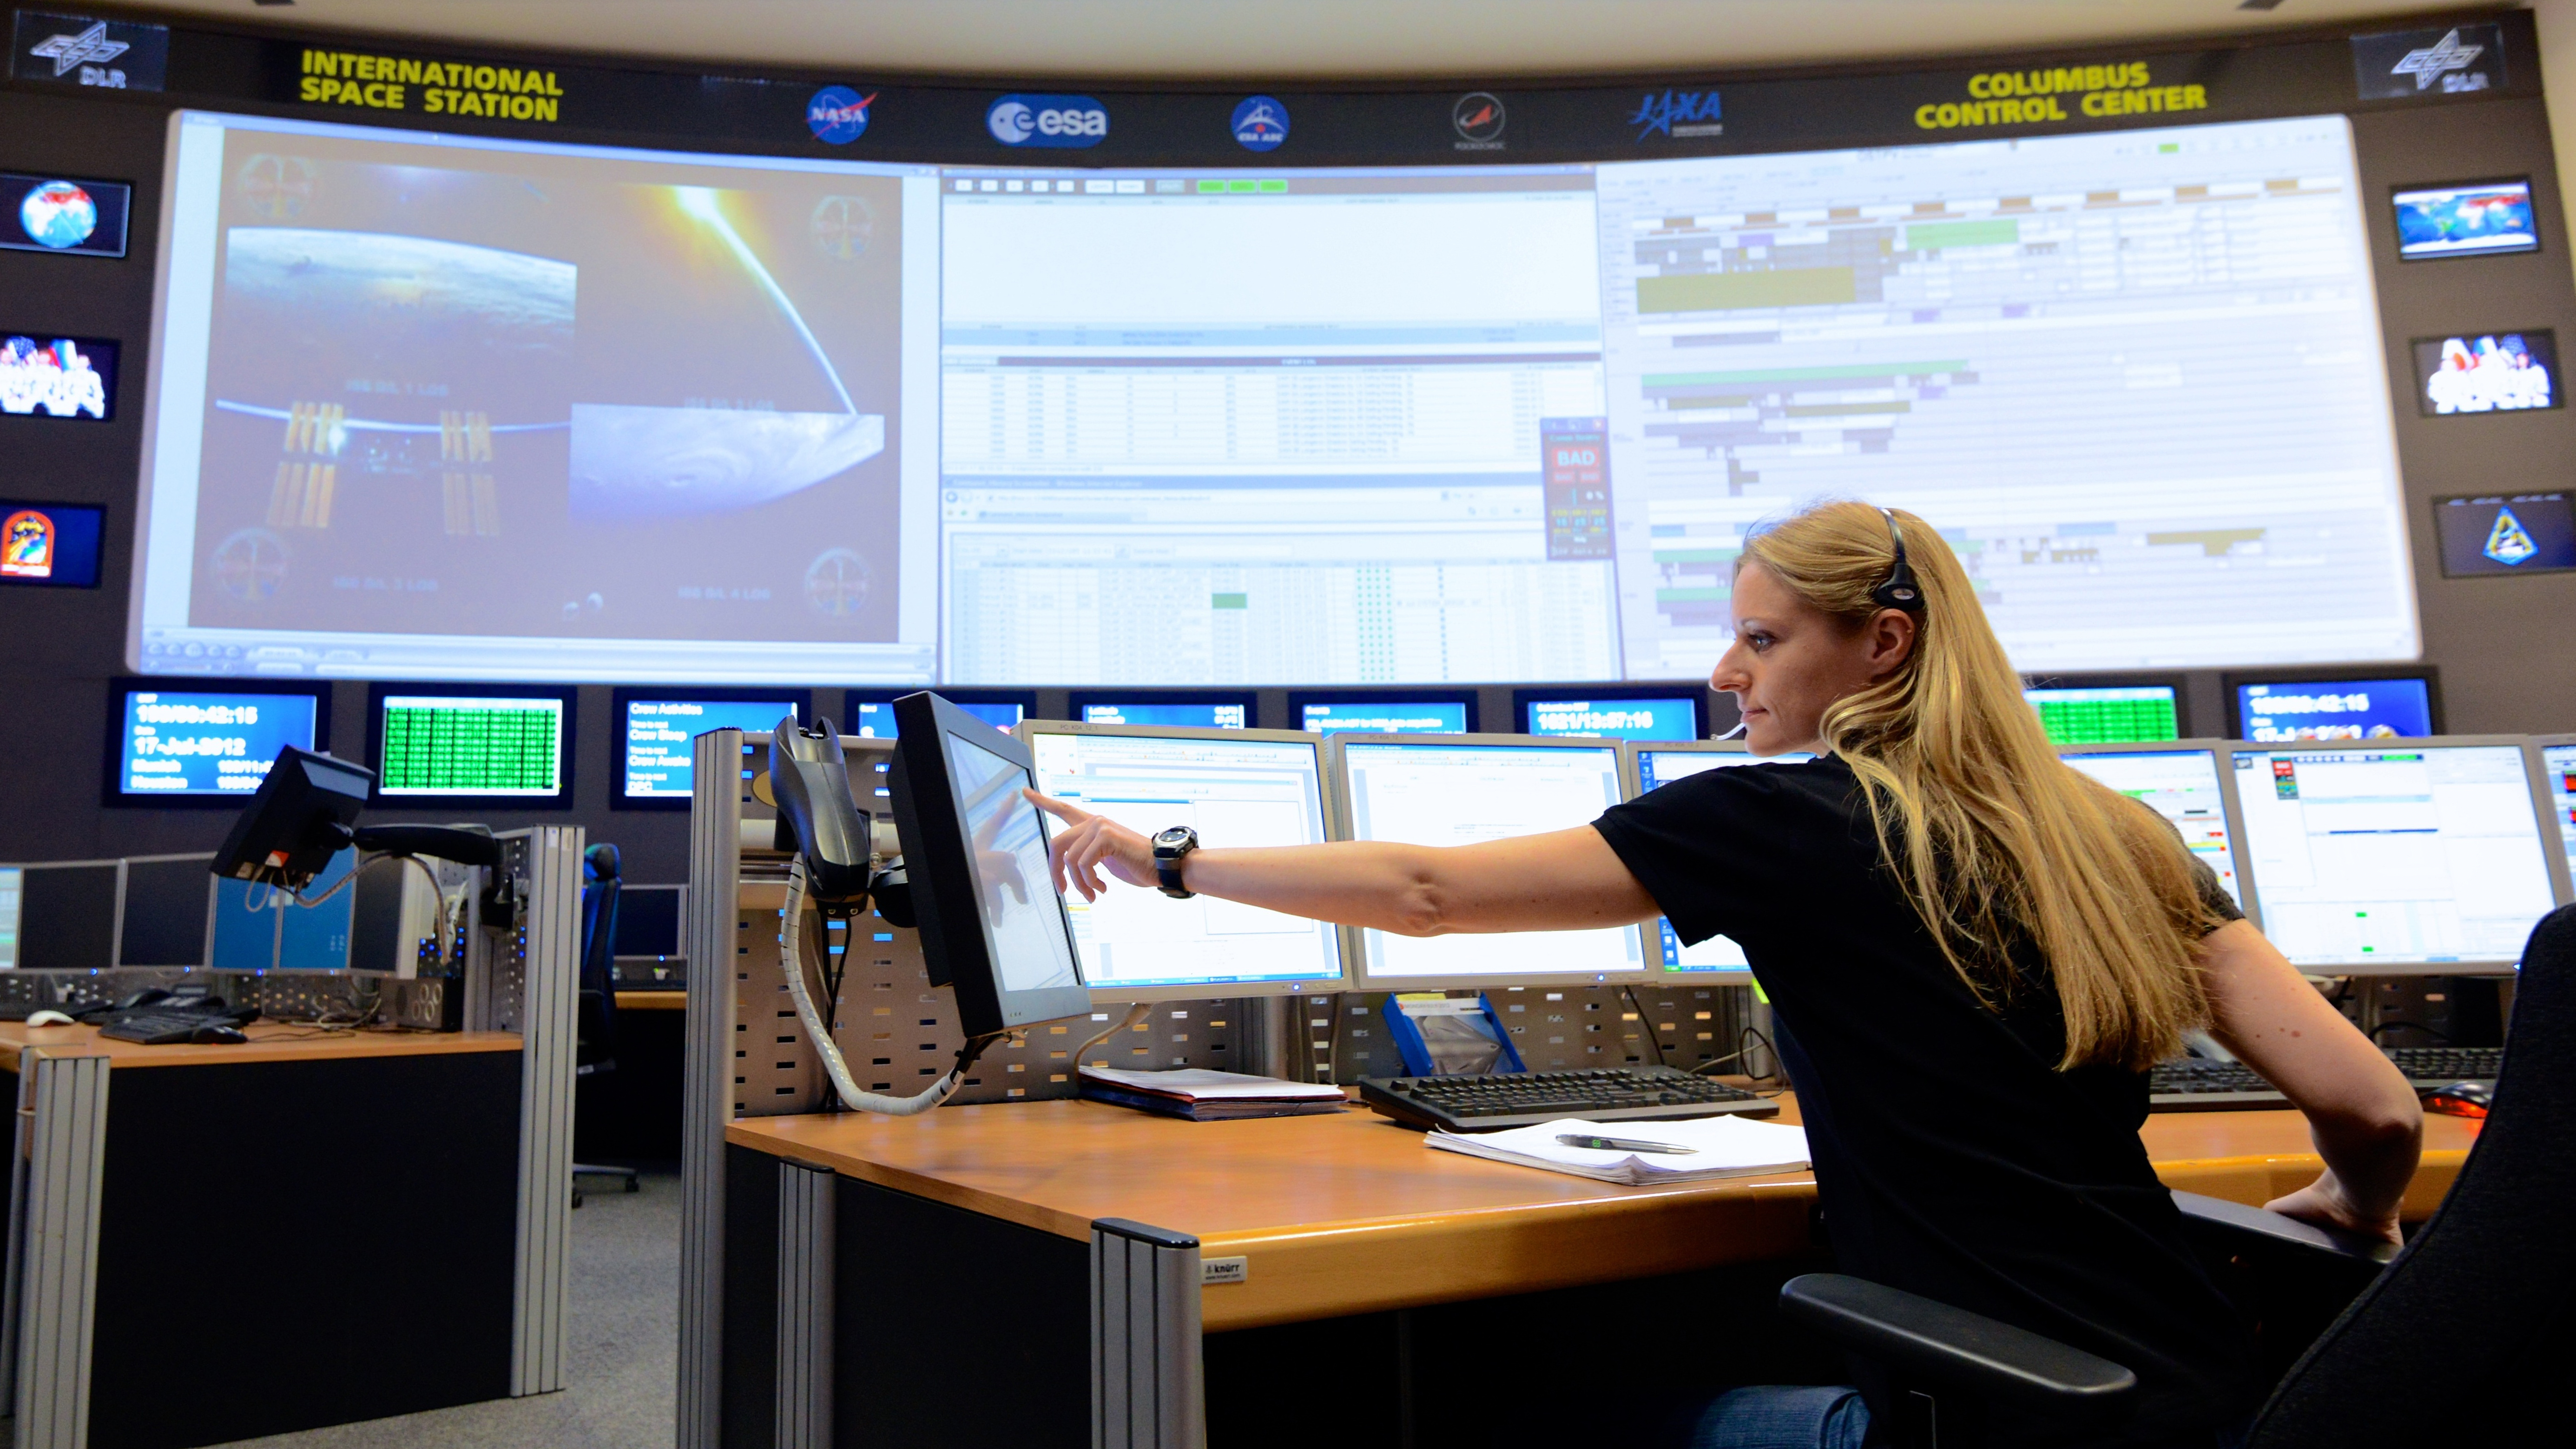 Columbus Control Center Europe S Link To The Iss